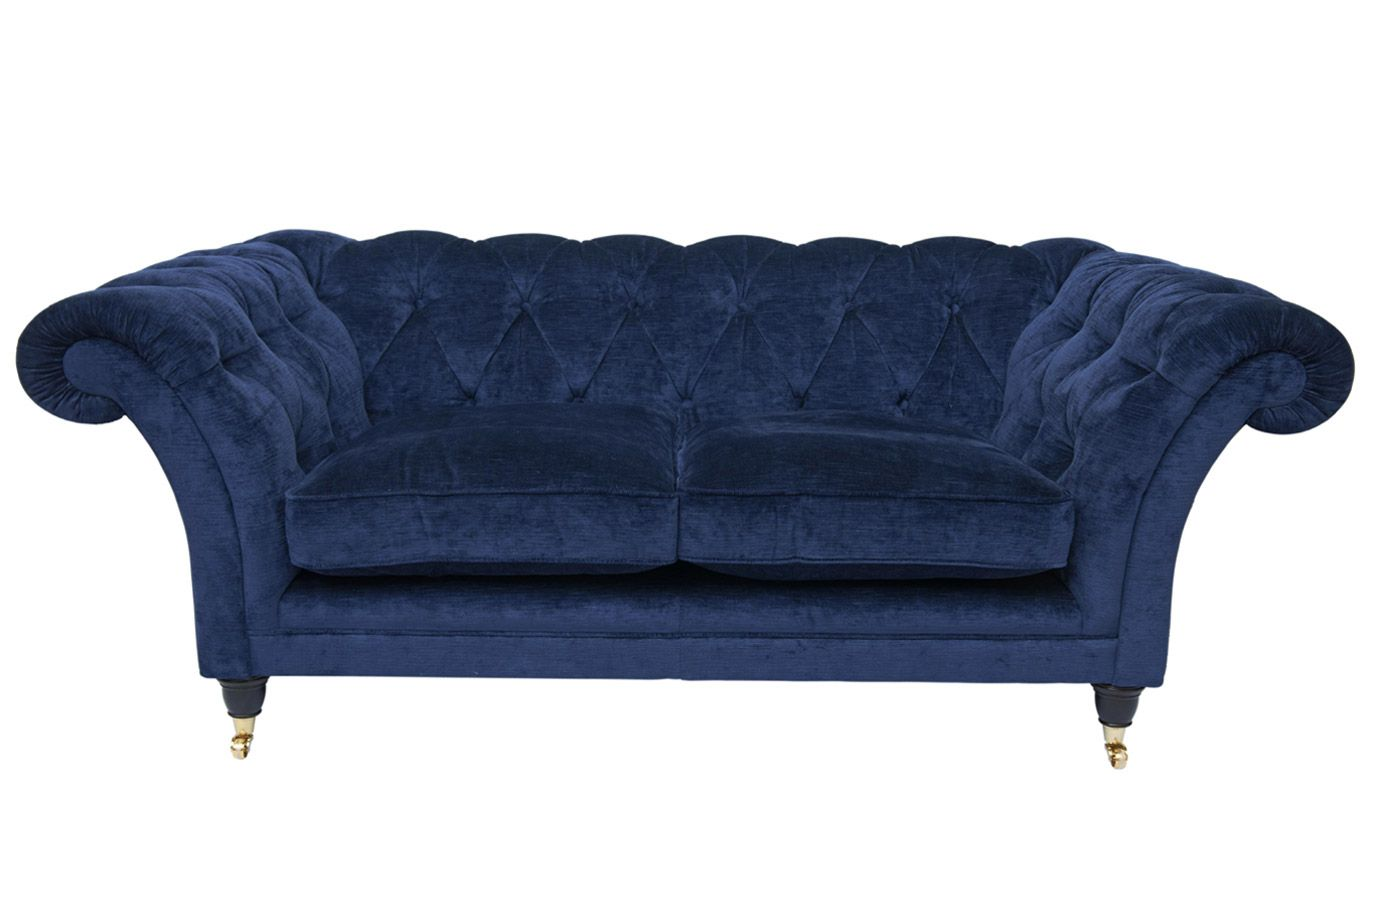 sofas laura ashley furniture donate a sofa hudson new home pinterest